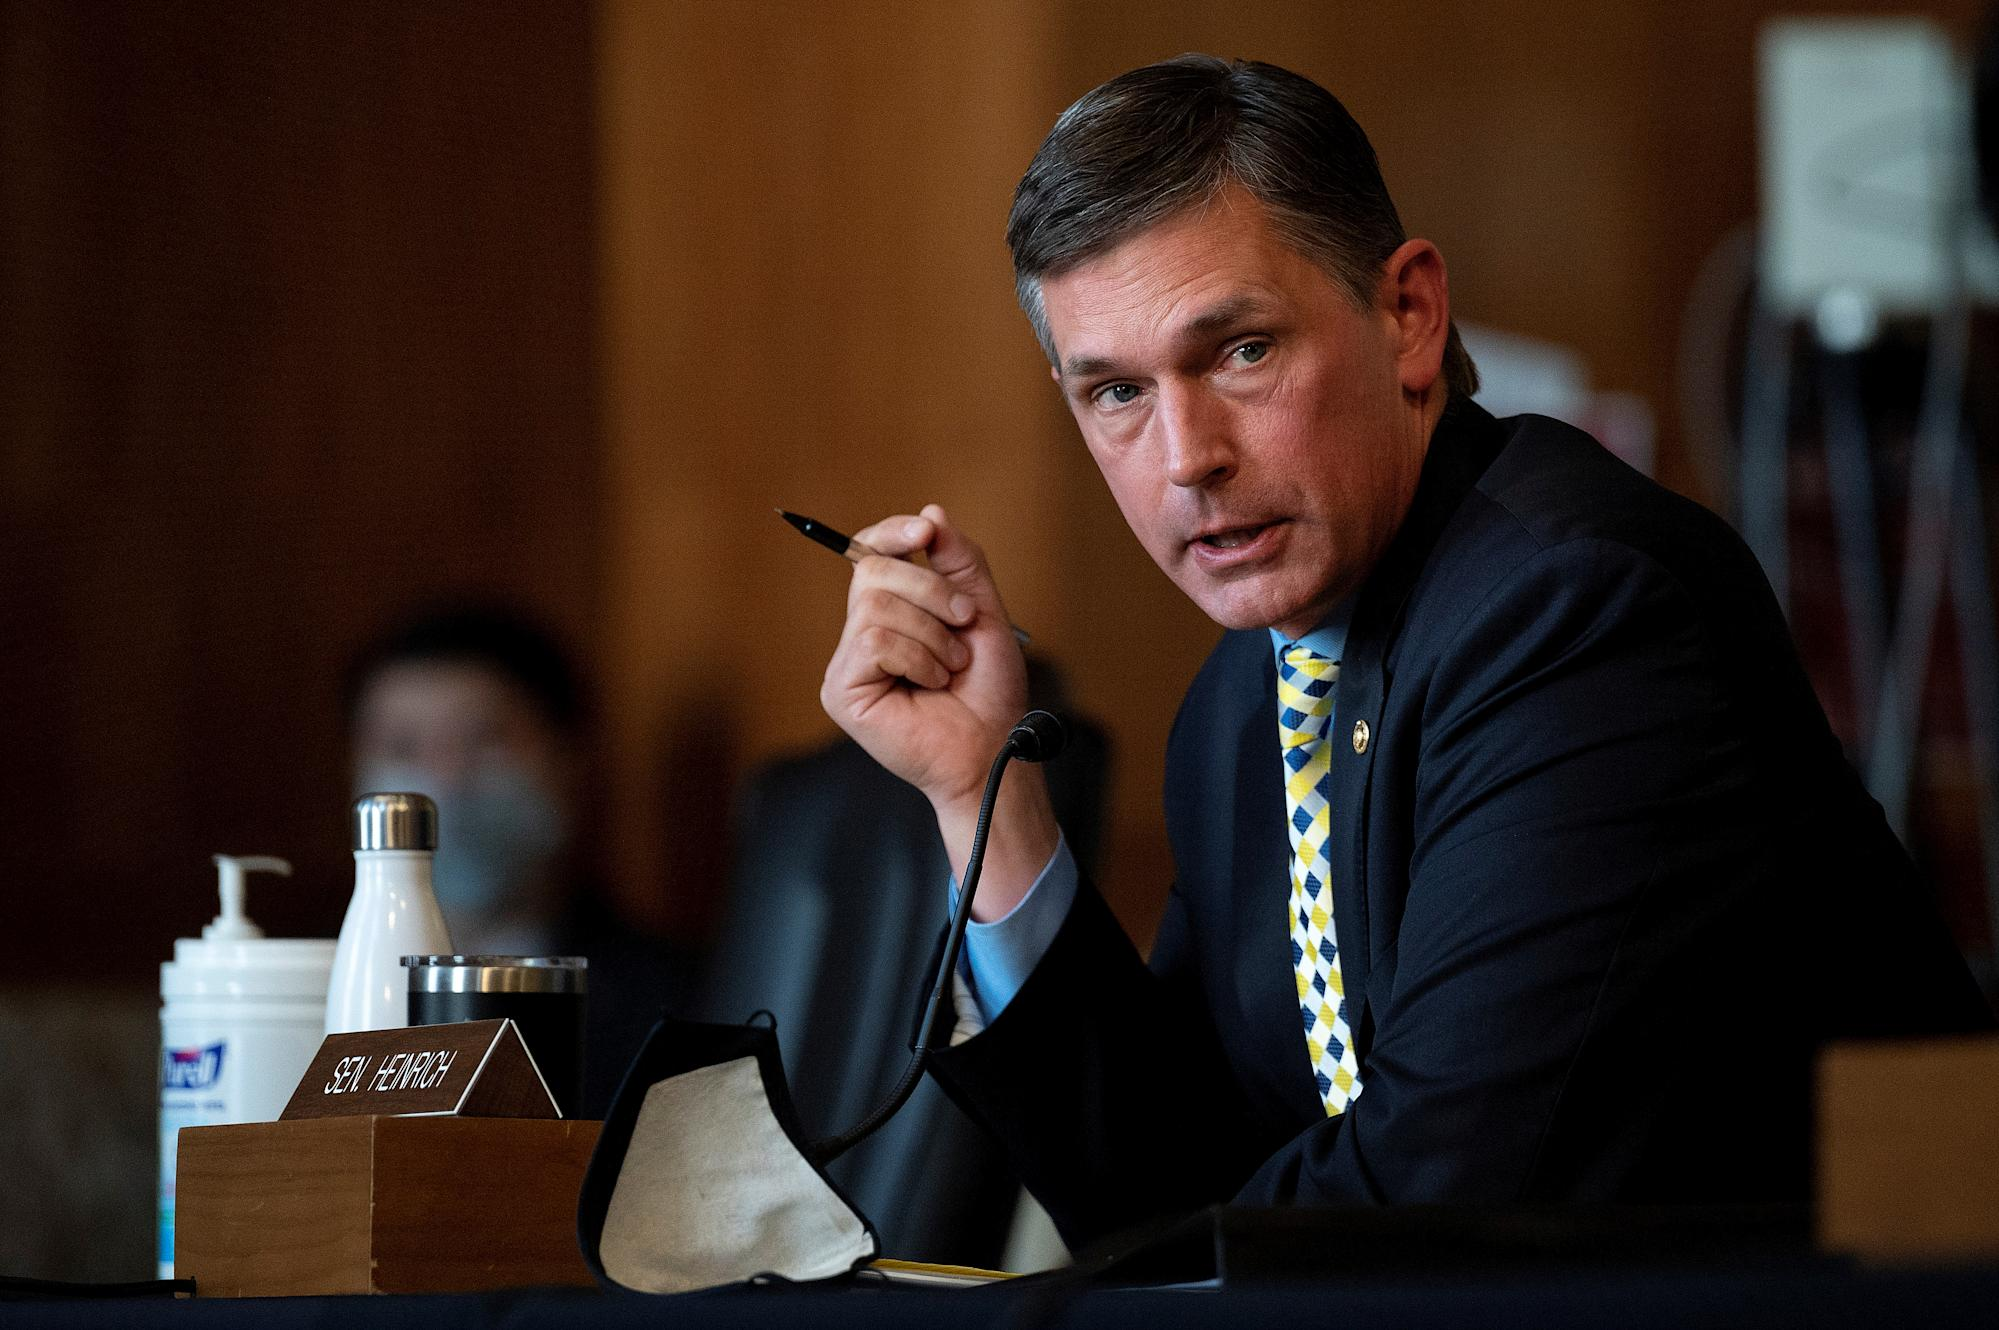 Senator says climate must be a part of infrastructure package: 'We are running out of time'